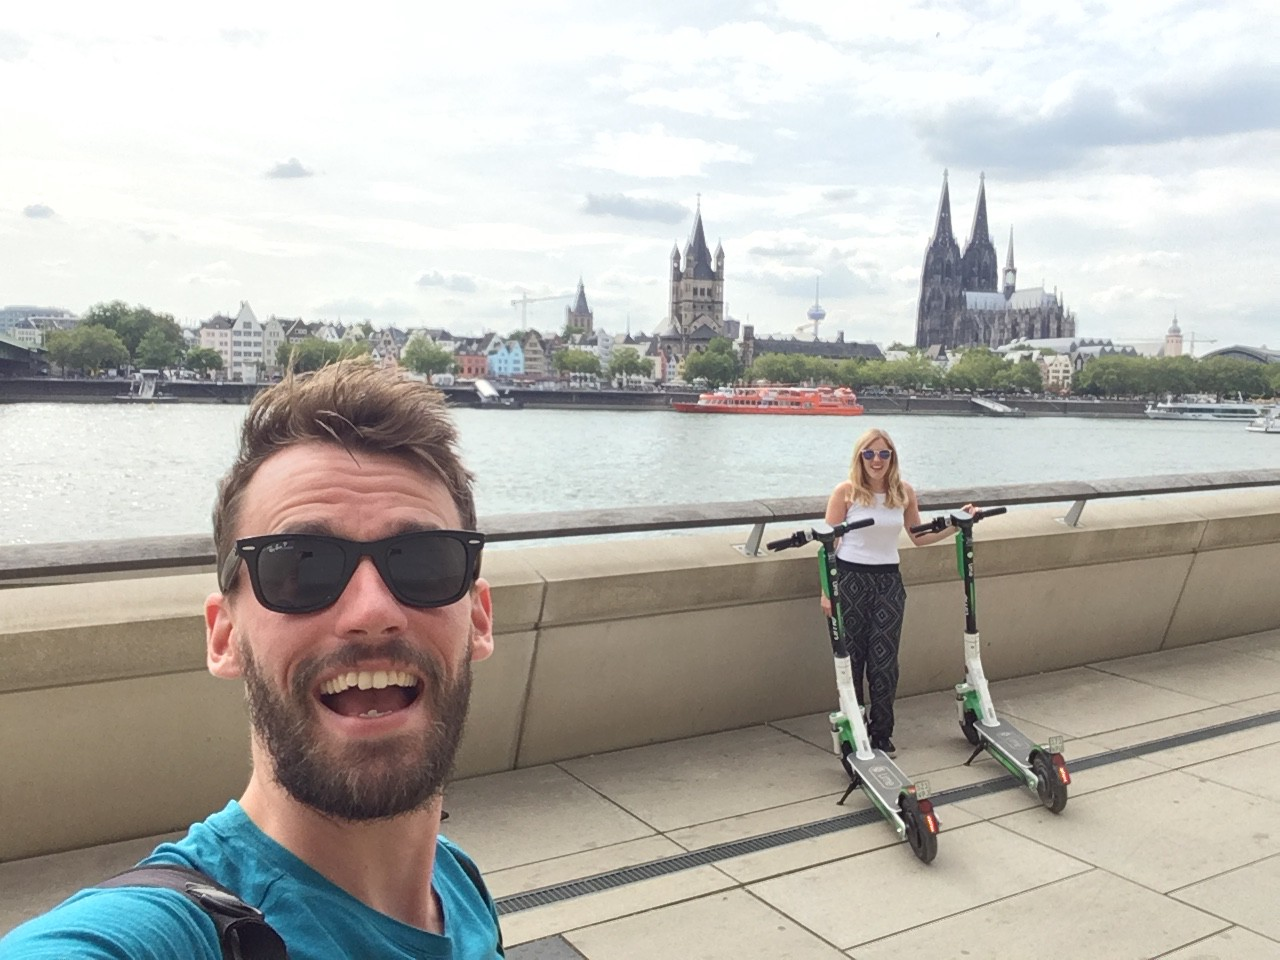 Selfie with electric scooters and Cologne in the background